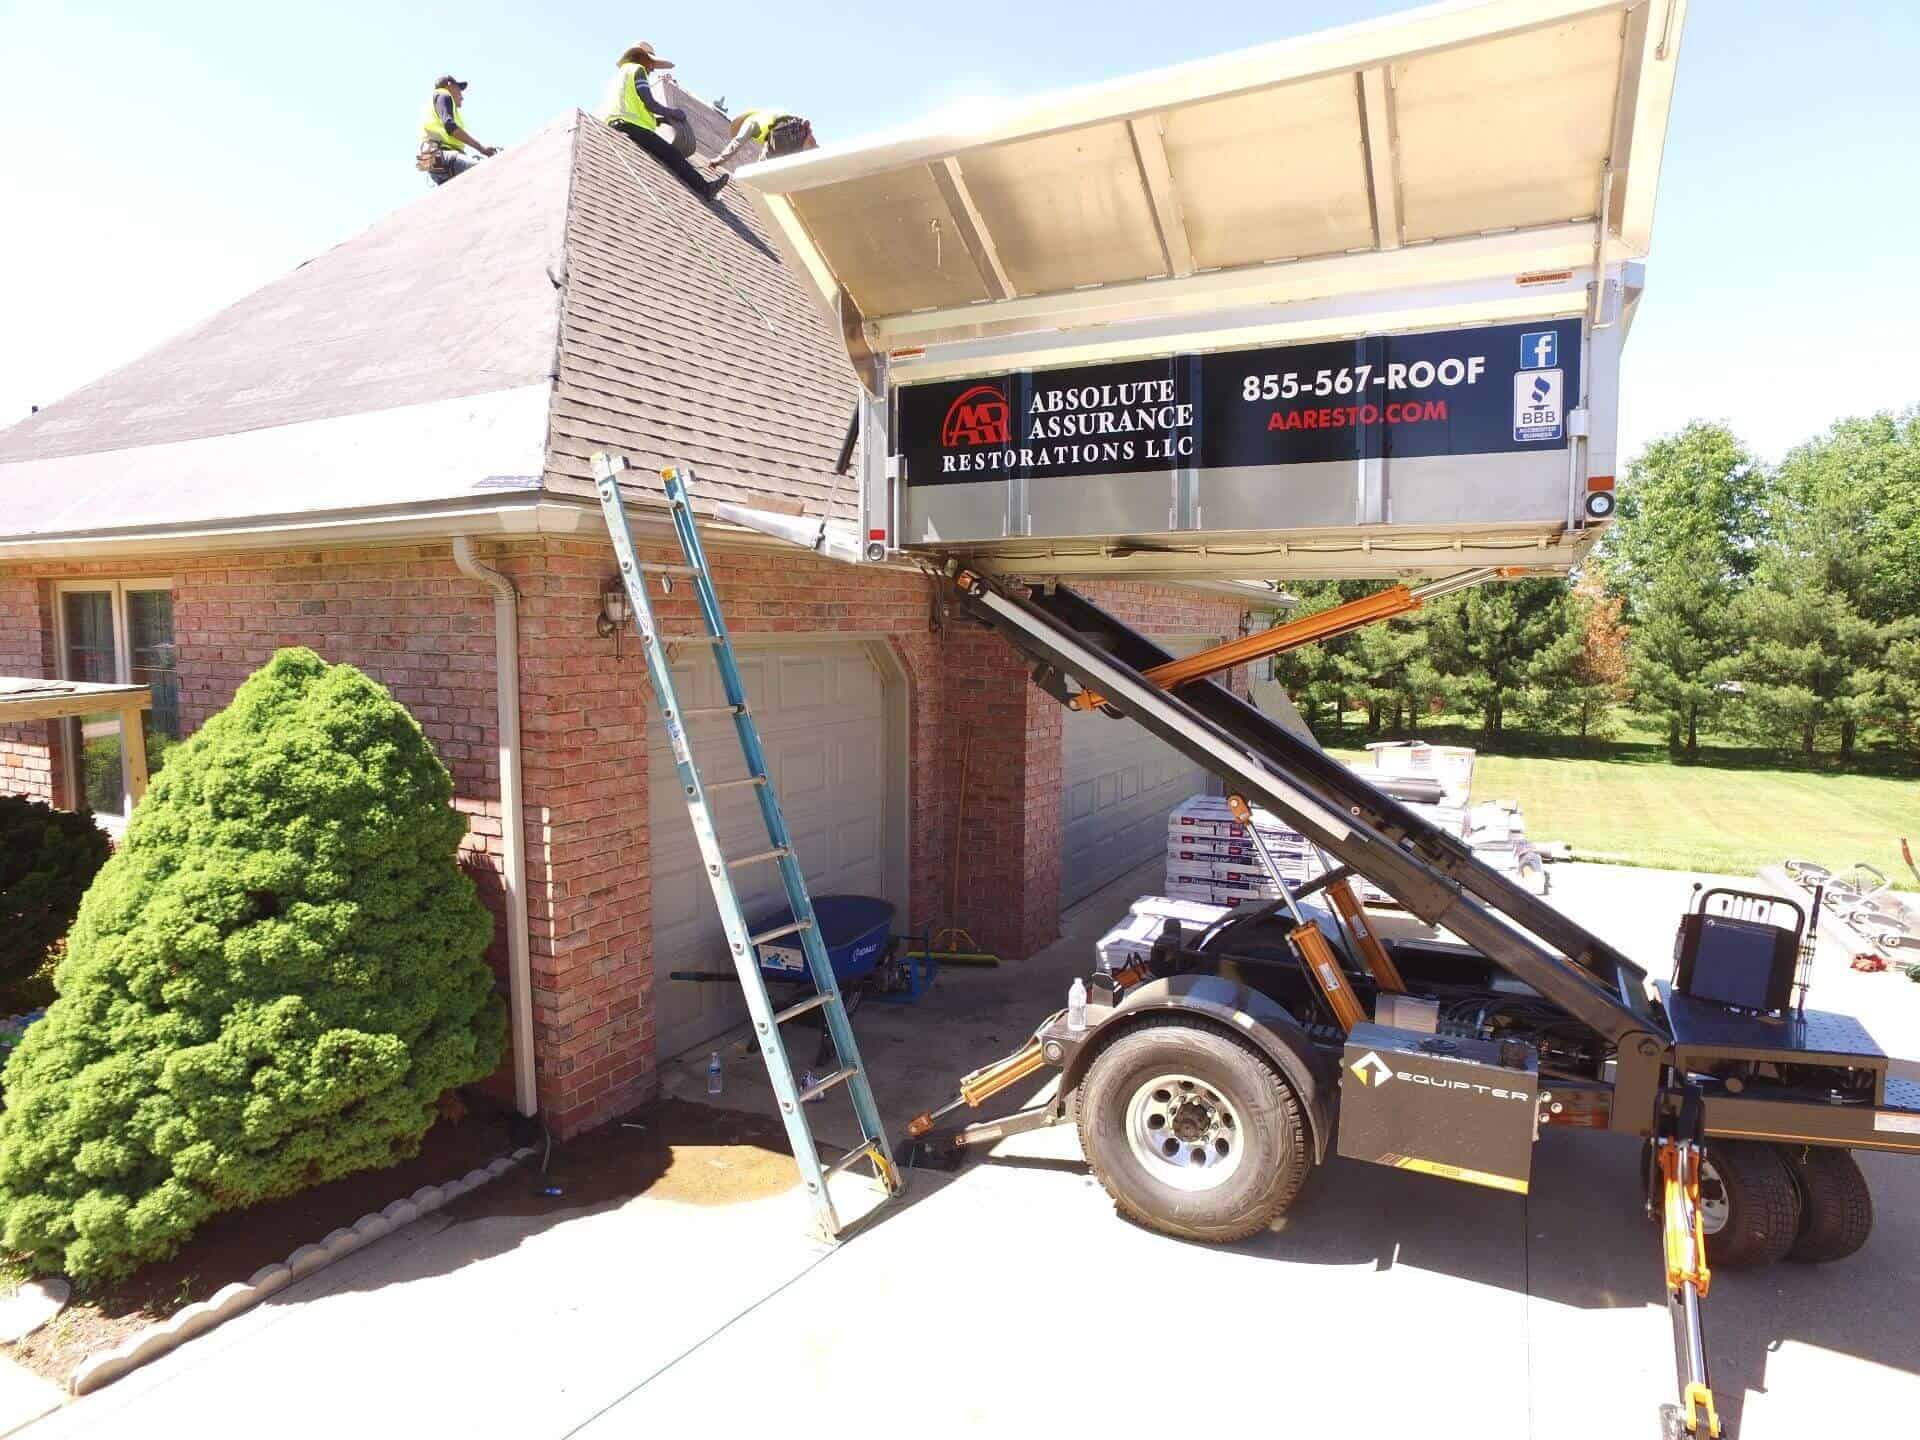 roofing contractor in mansfield ohio installing a new roof with equipter machine